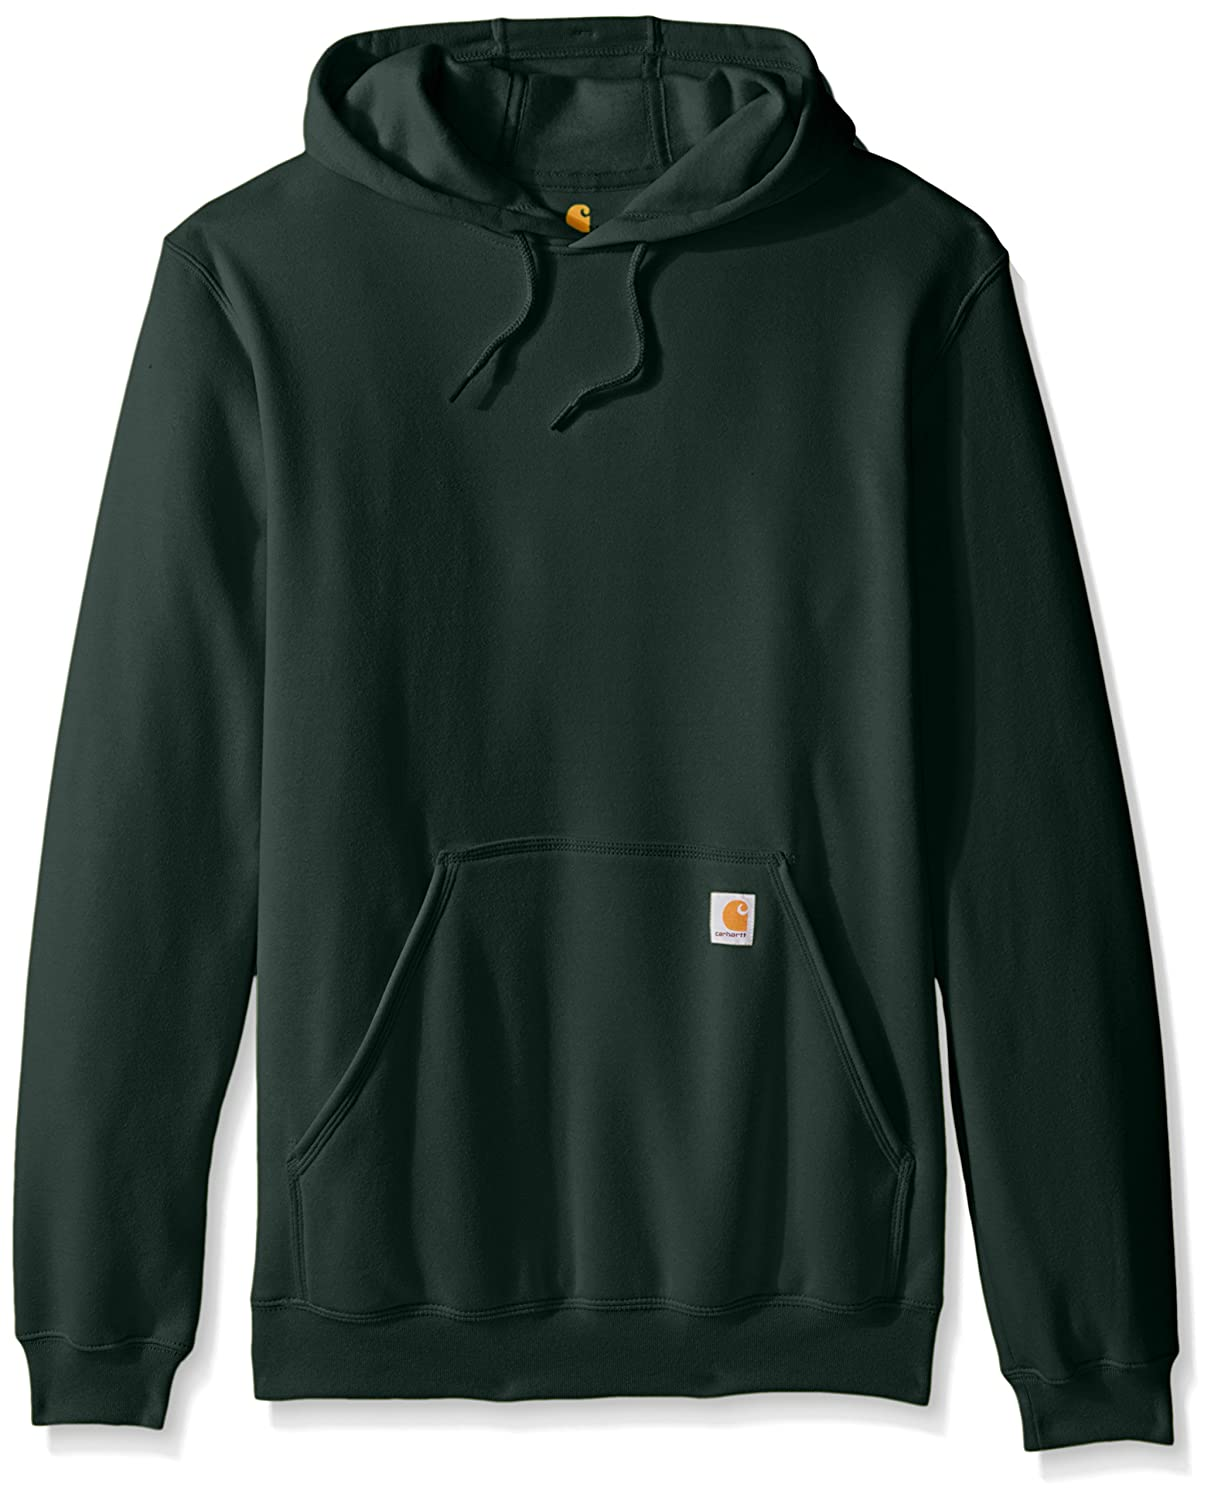 Carhartt Men's Big & Tall Midweight Sweatshirt Hooded Pullover Original Fit K121 Carhartt Sportswear - Mens